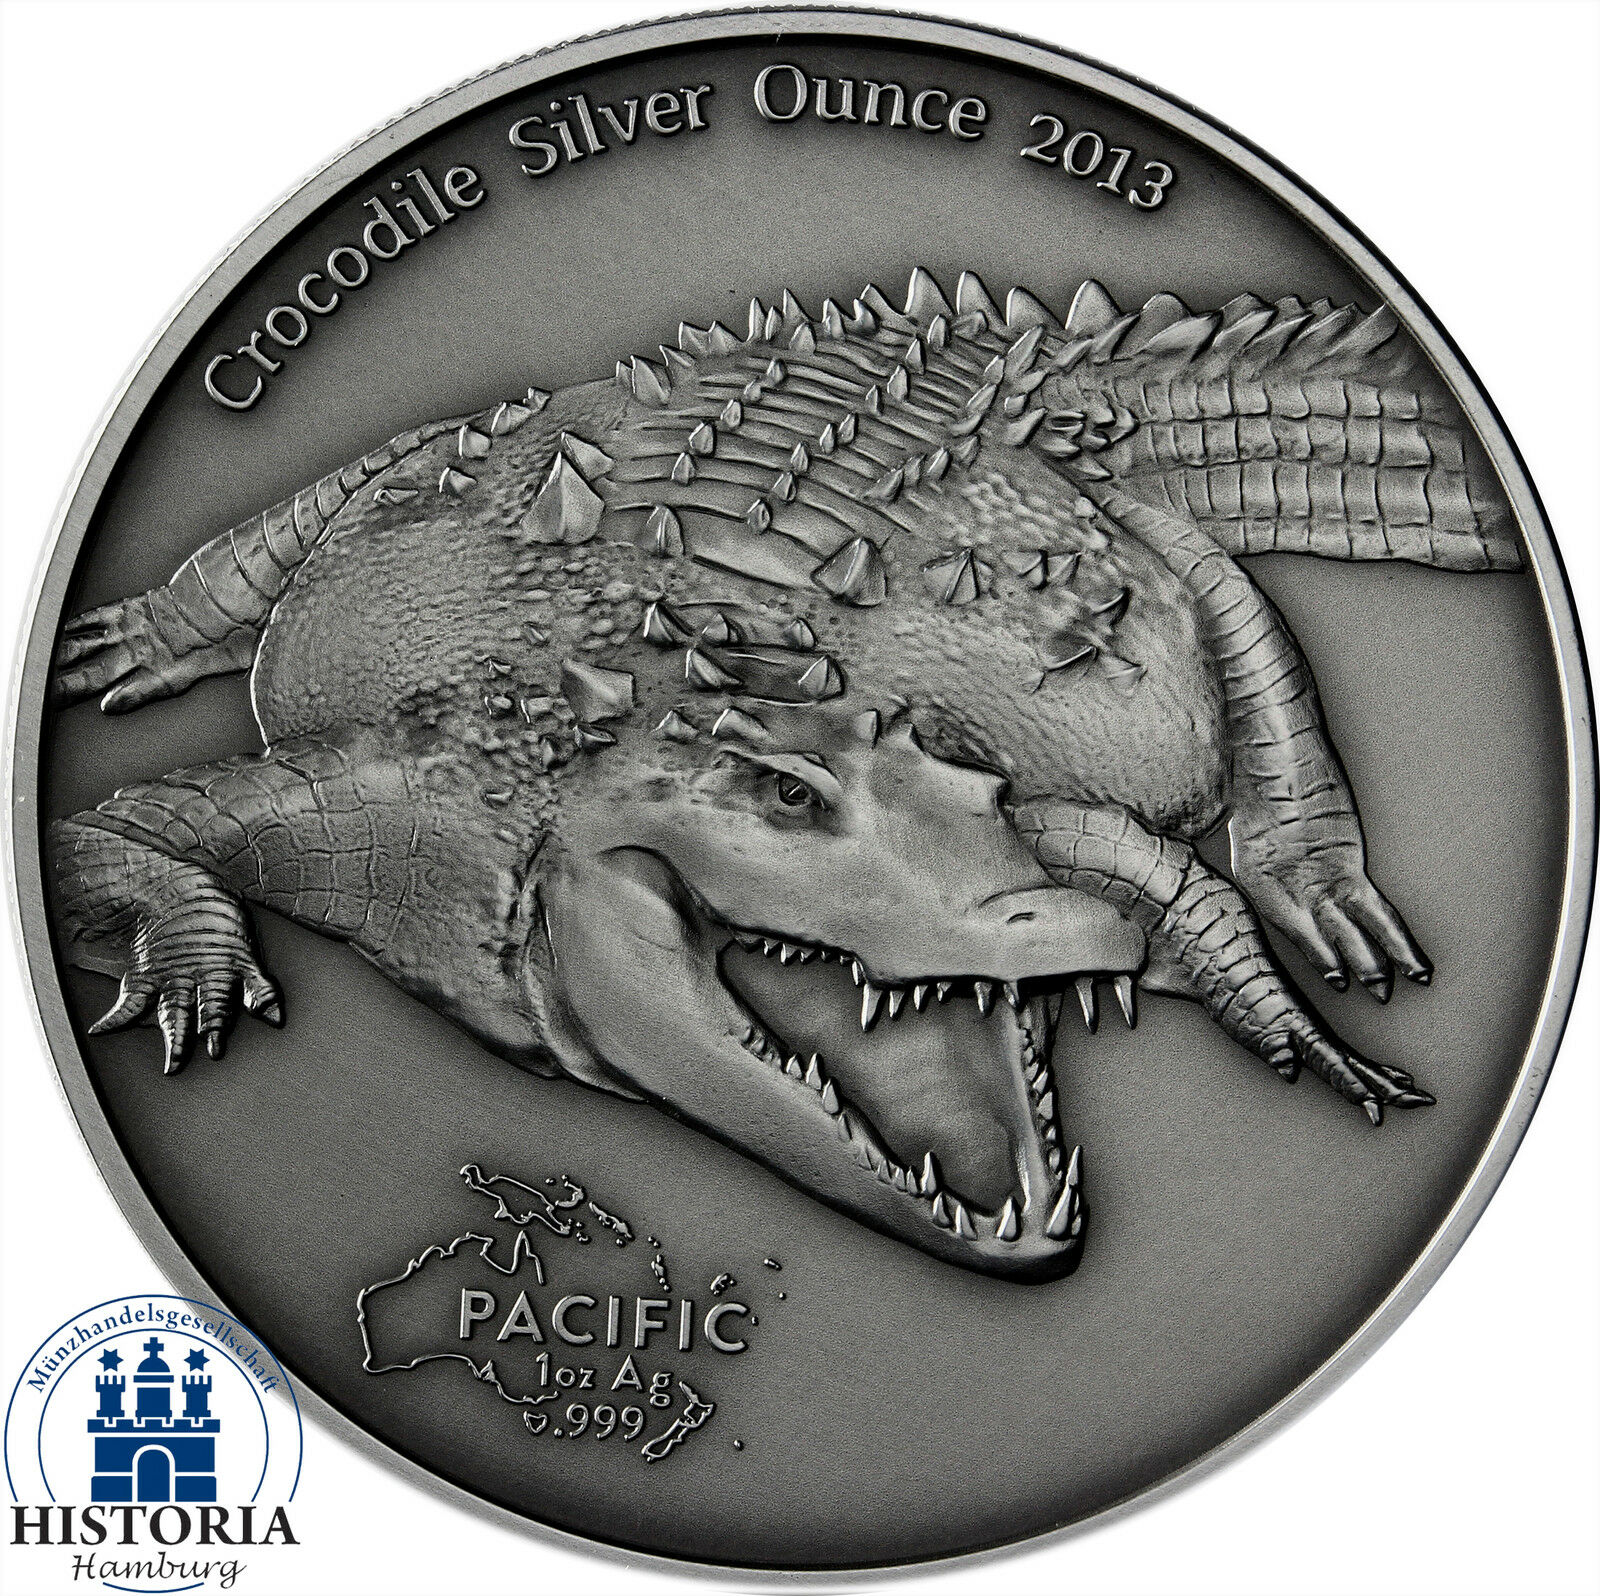 PACIFIK SERIE 2013: Tokelau 5 Dollars Silber Unze ... - photo#39